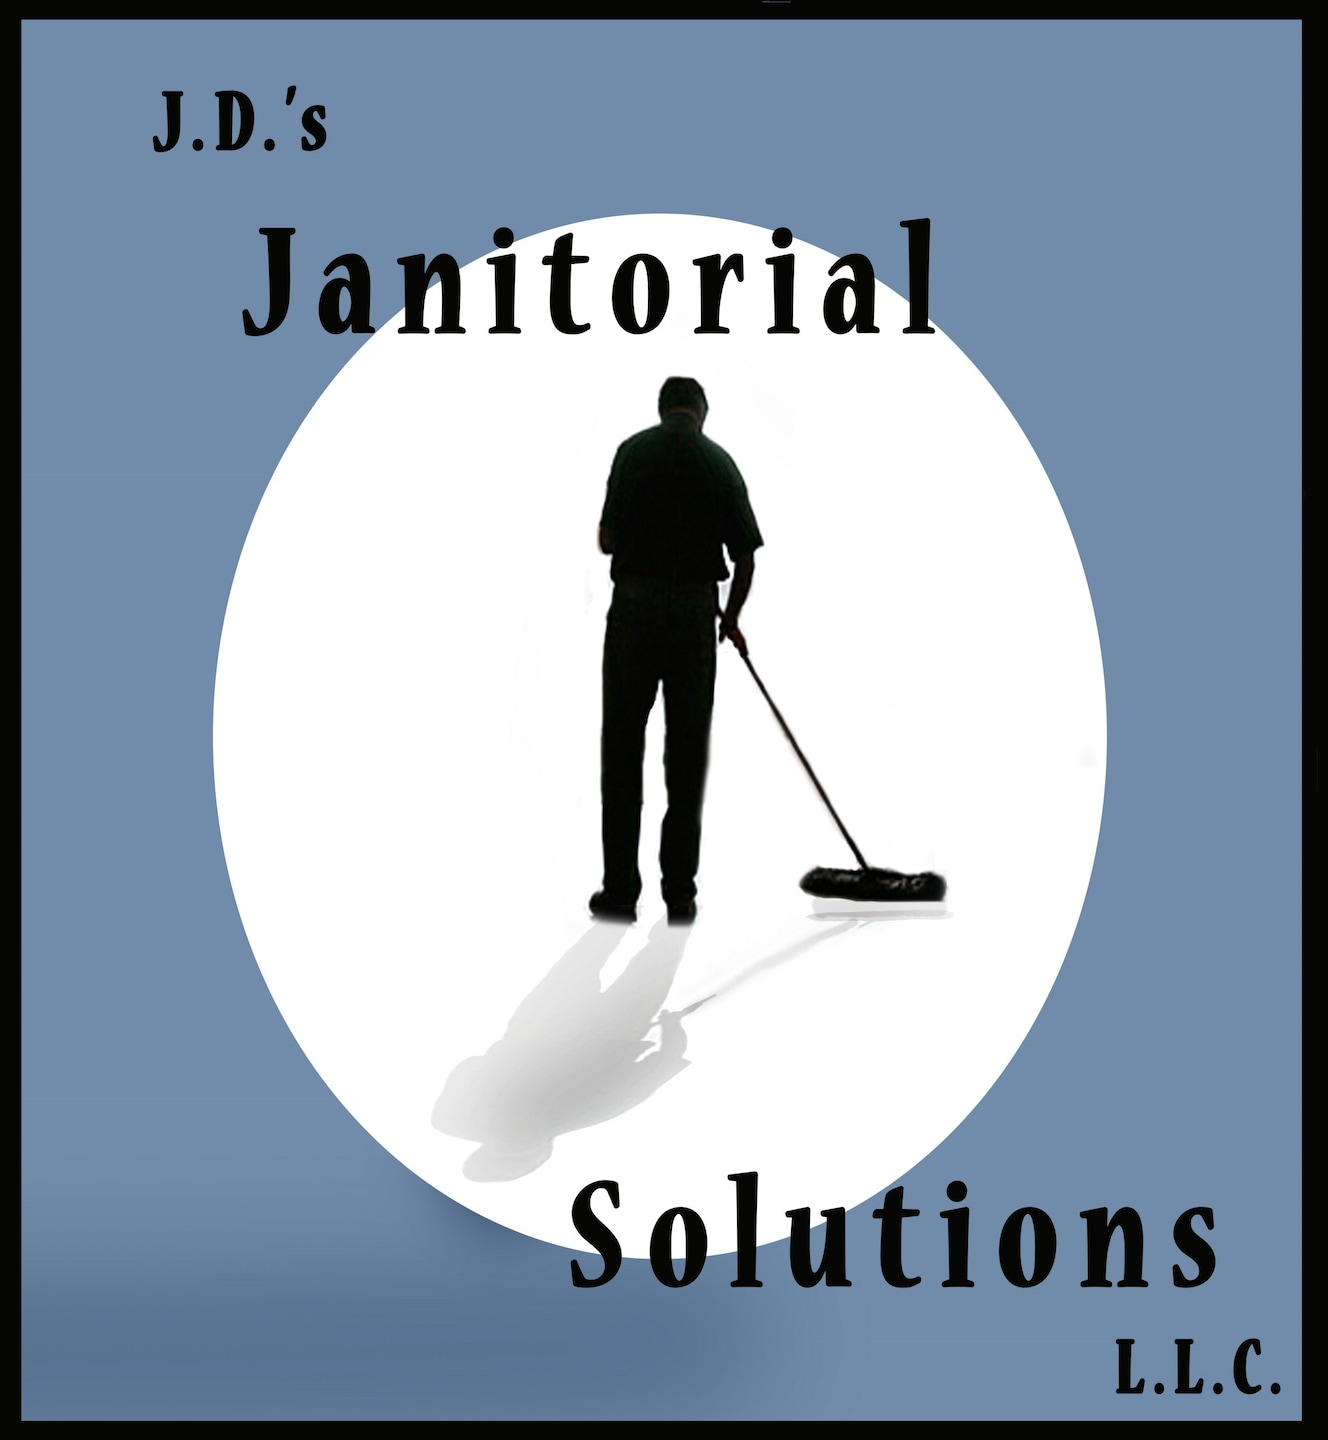 J.D.'s Janitorial Solutions